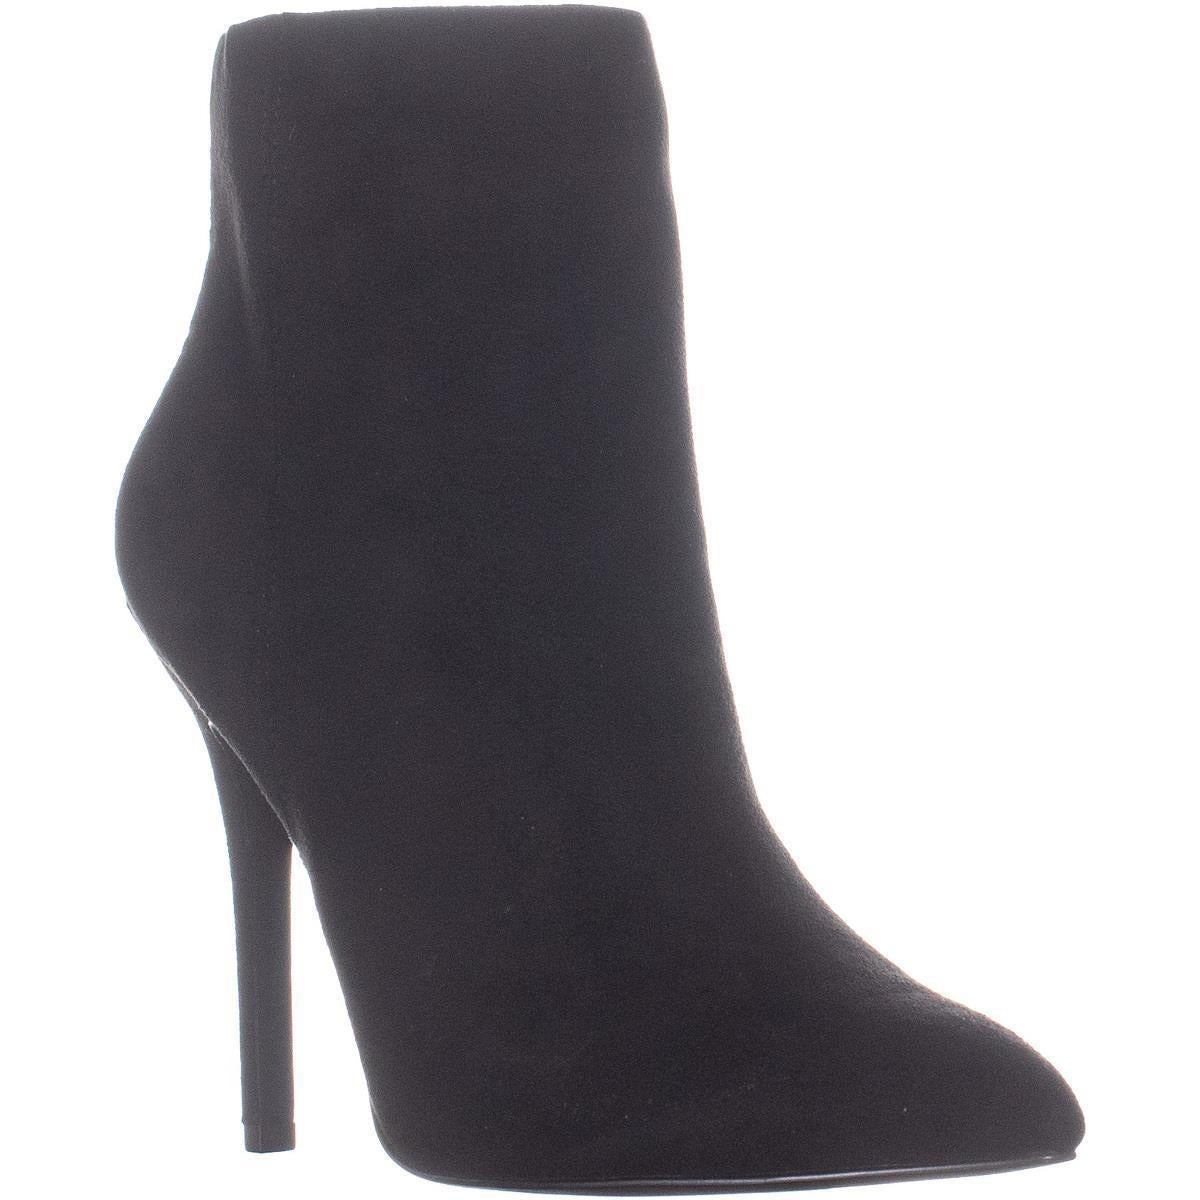 Charles David Delicious 2 Ankle Boots